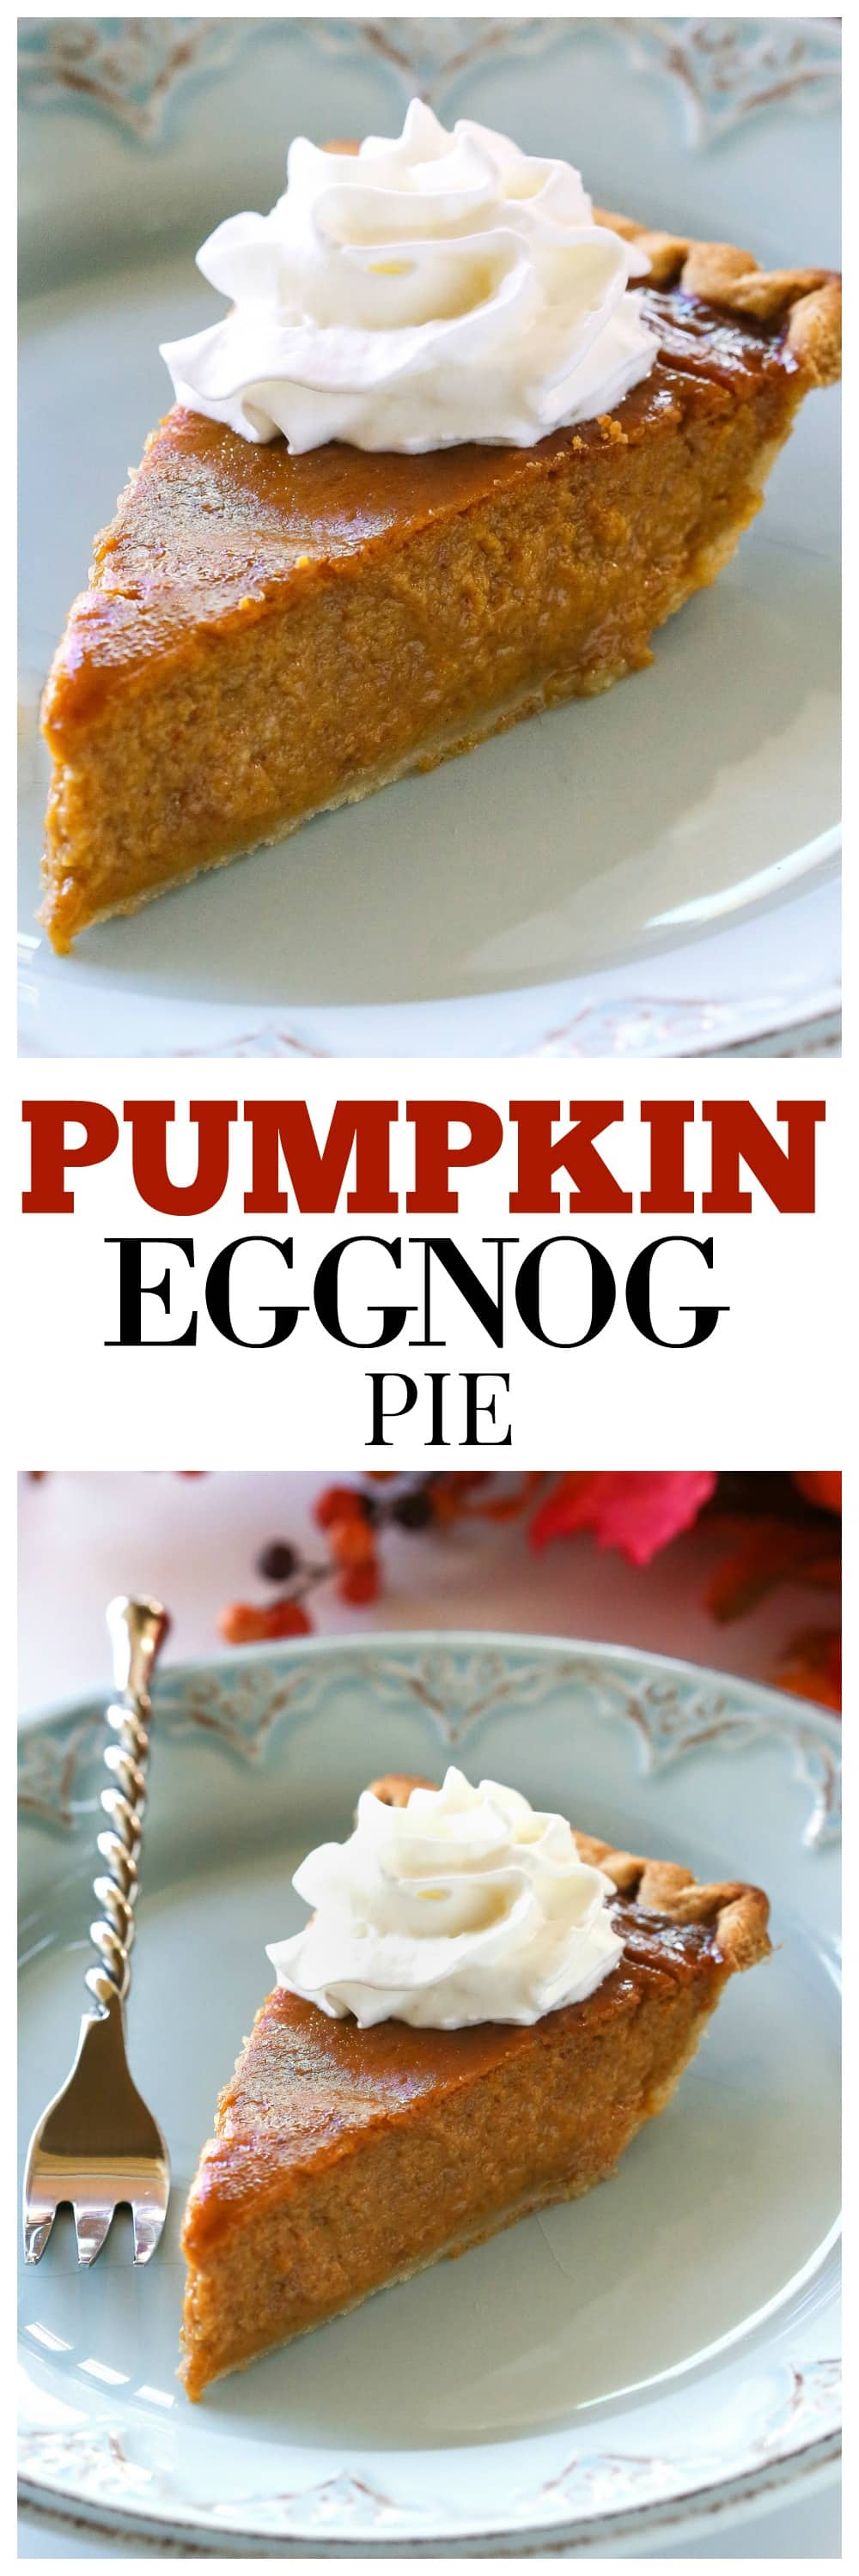 Pumpkin Eggnog Pie - Thanksgiving dessert meets Christmas dessert! #eggnog #pumpkin #pie #thanksgiving #dessert